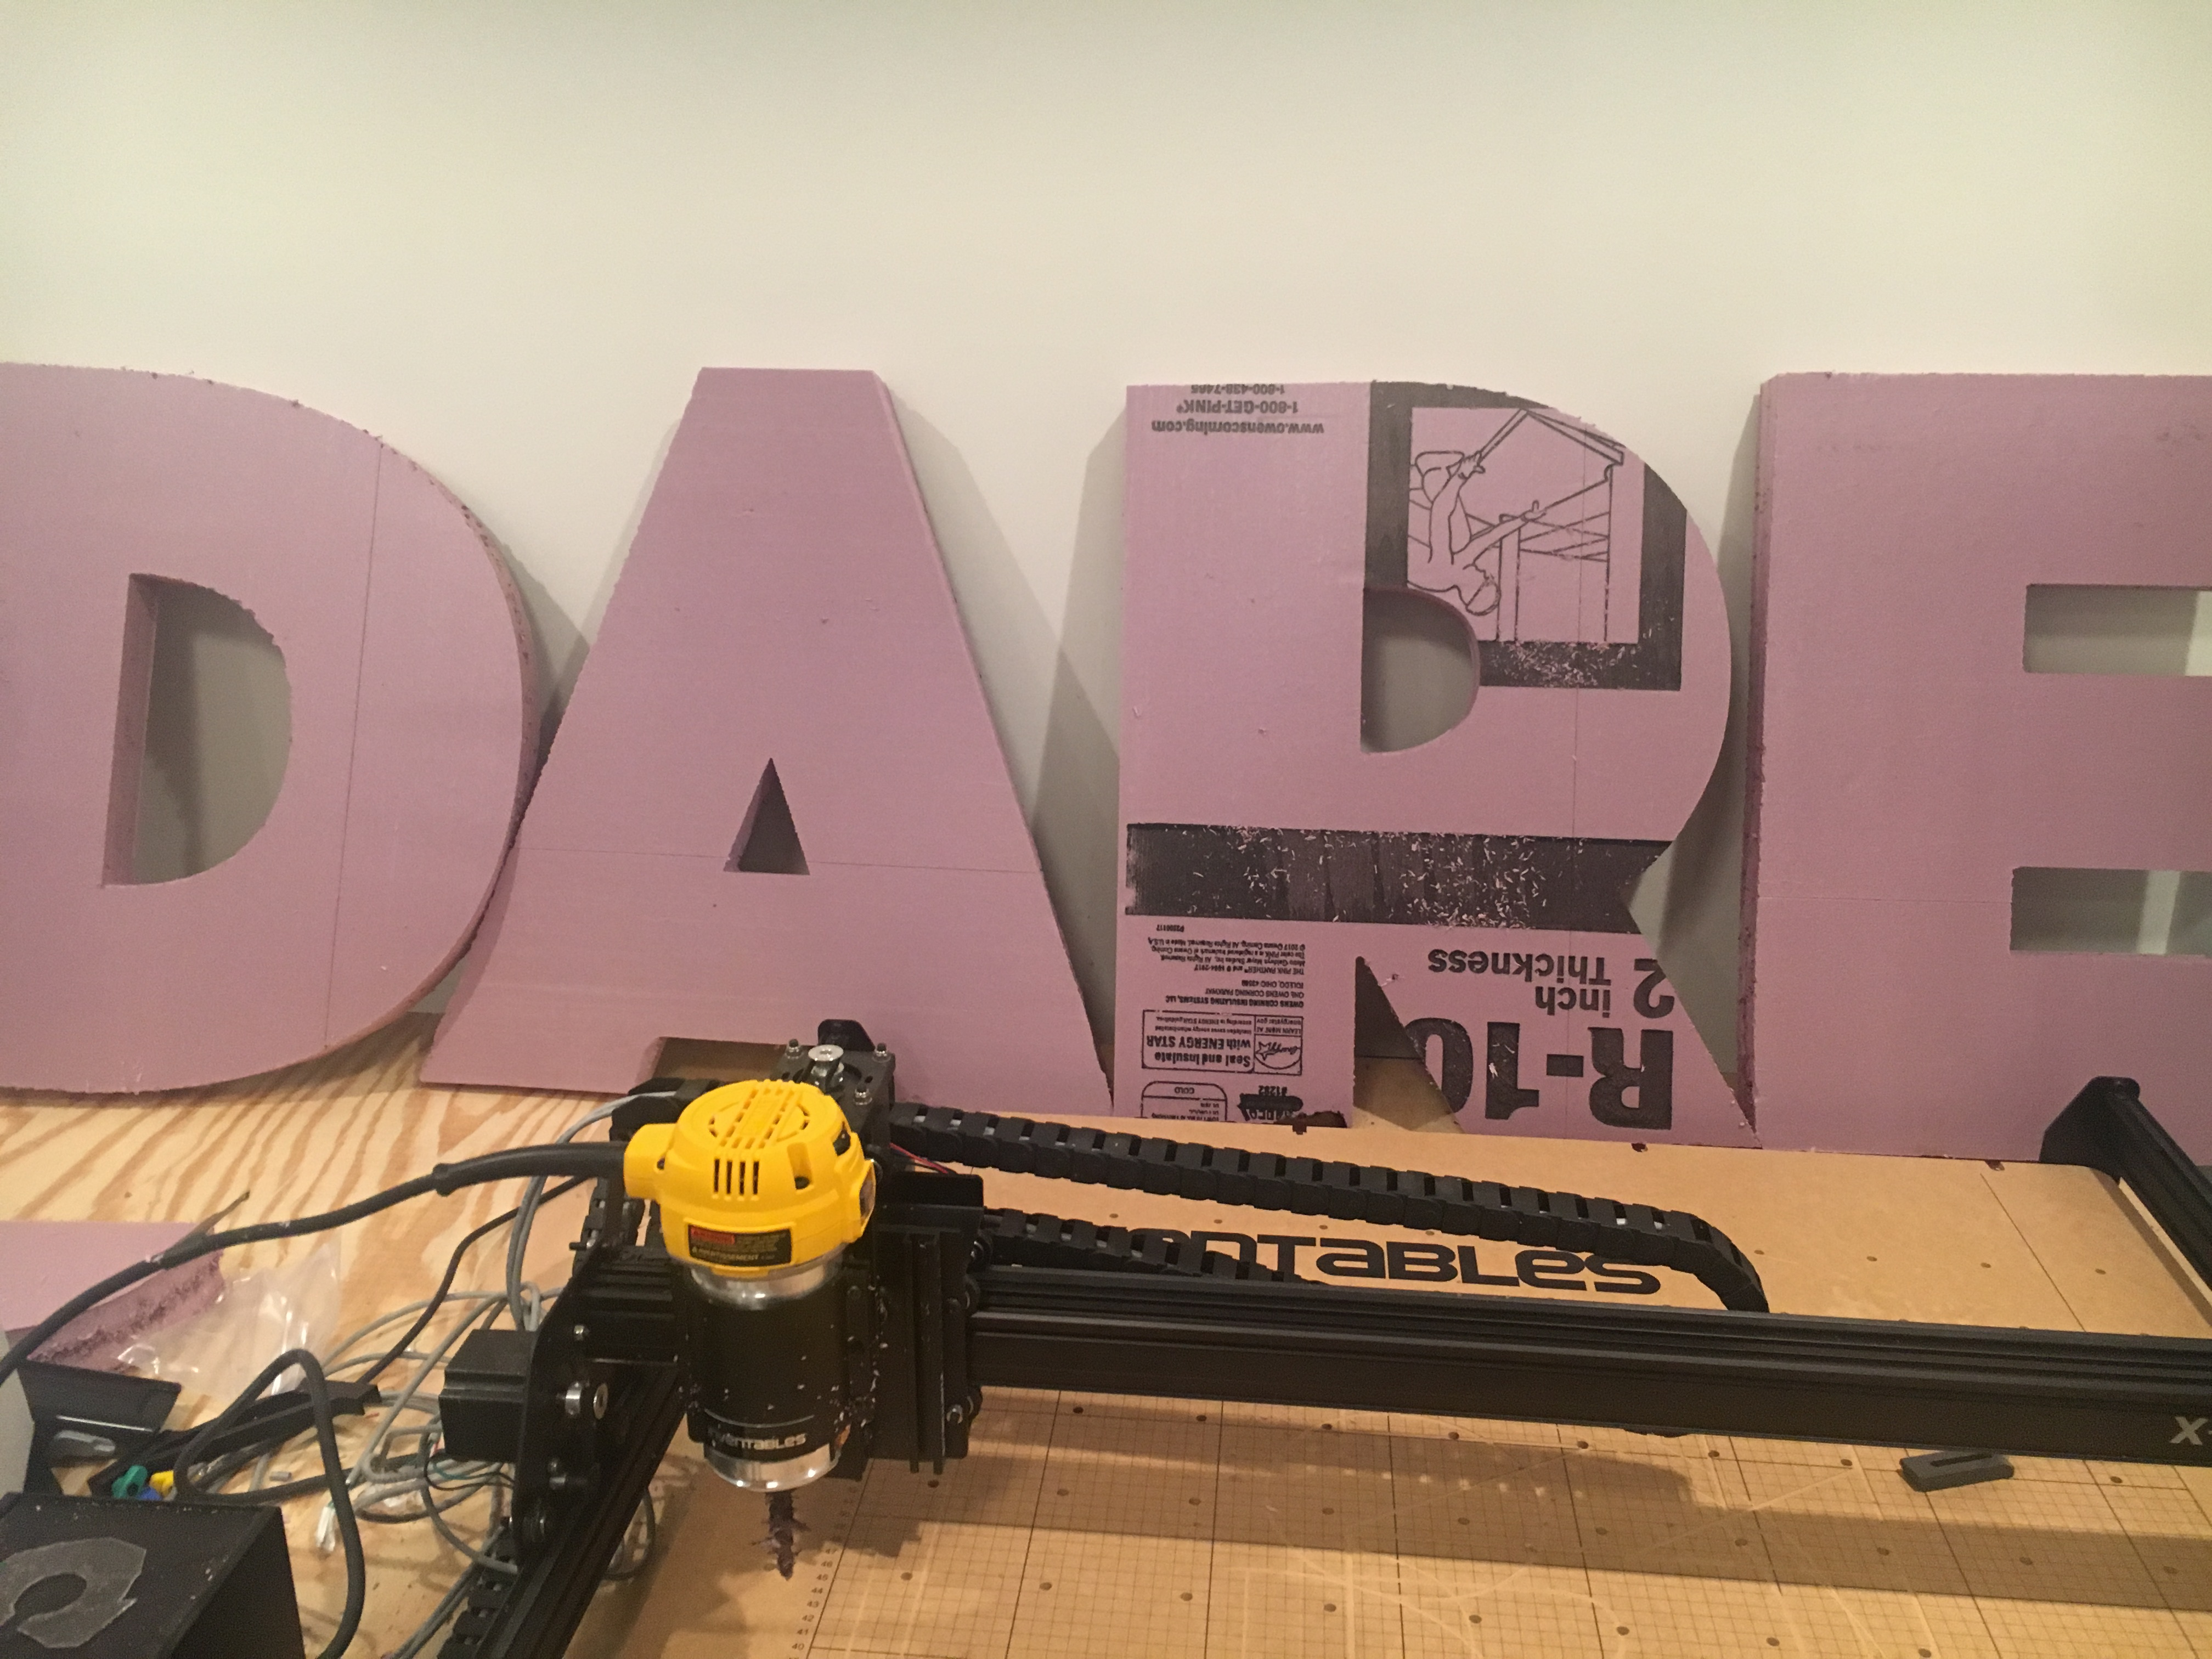 Paid foam letter project - Projects - Inventables Community